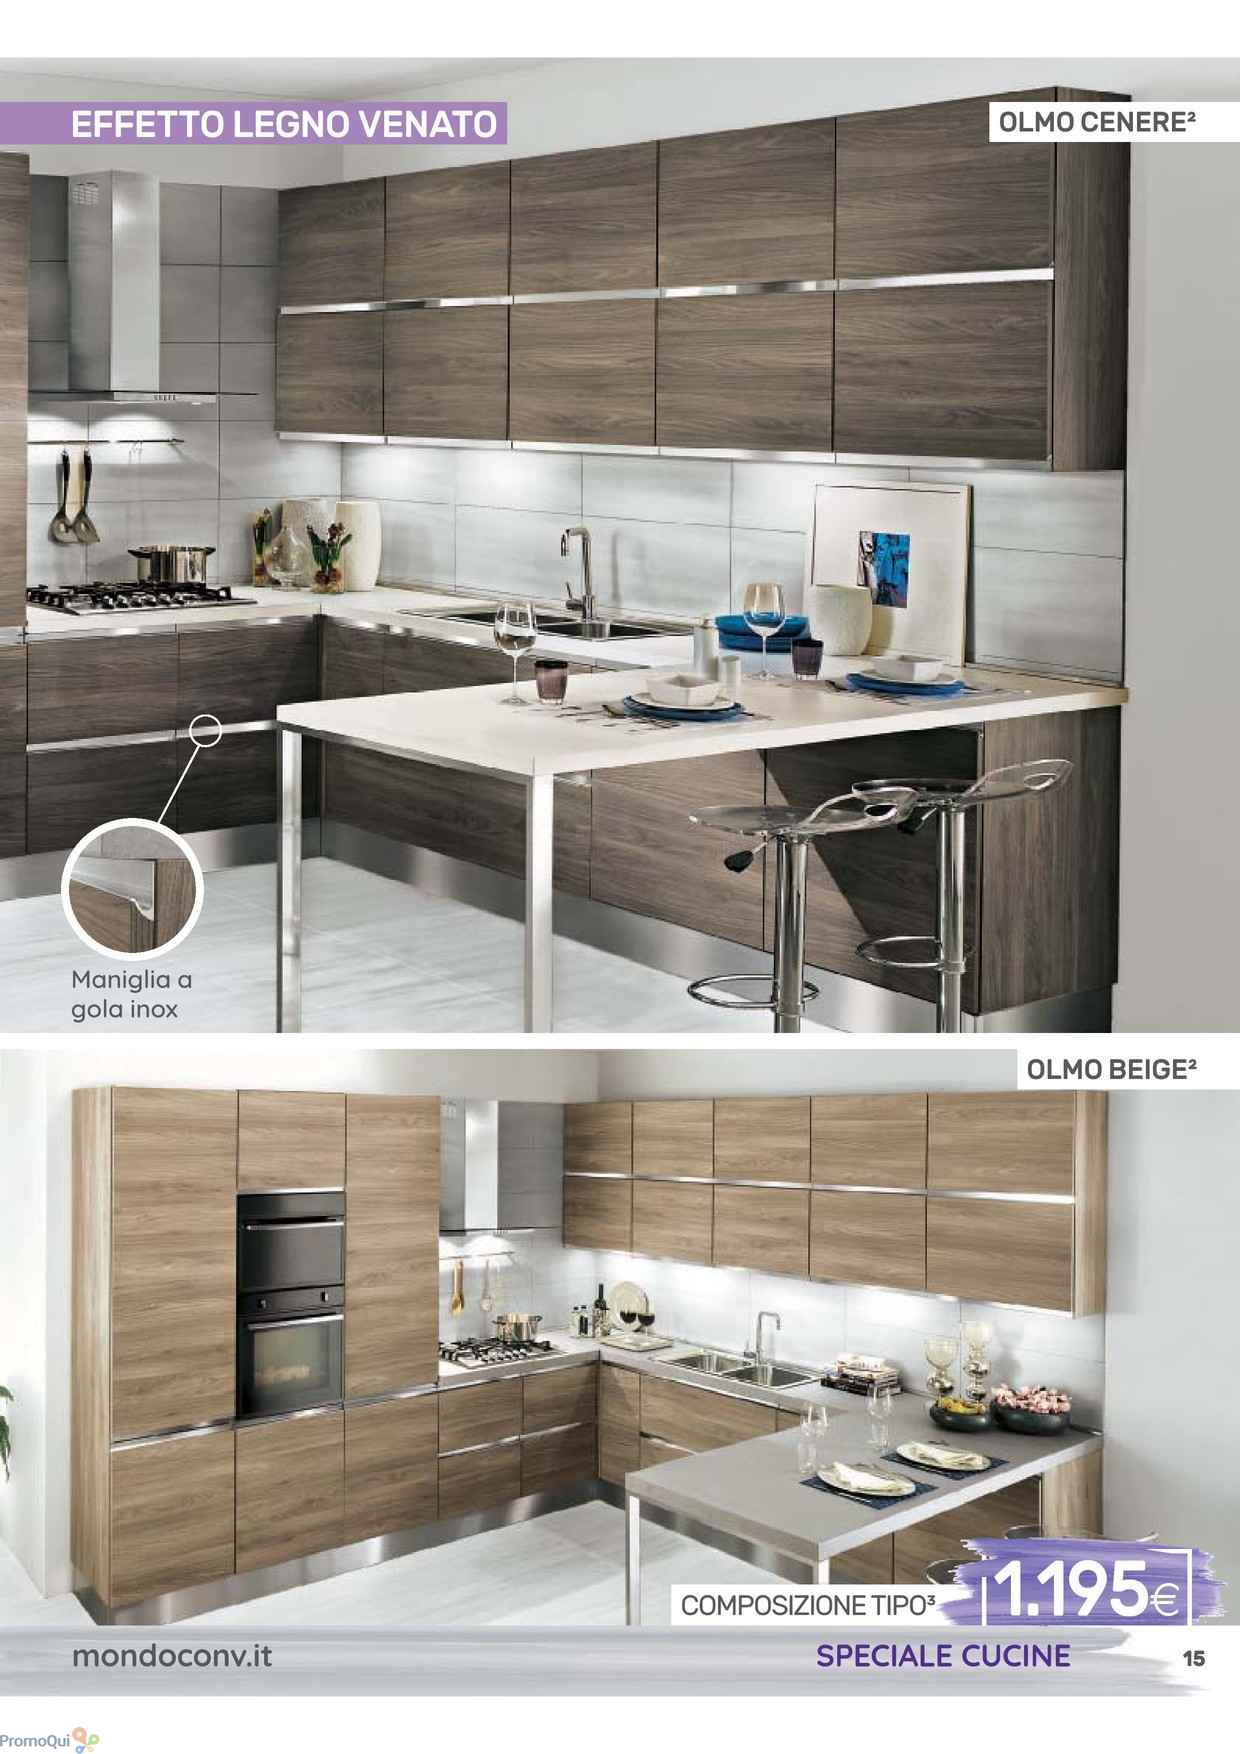 Emejing Cucina Tipo Mondo Convenienza Gallery - Home Interior Ideas ...